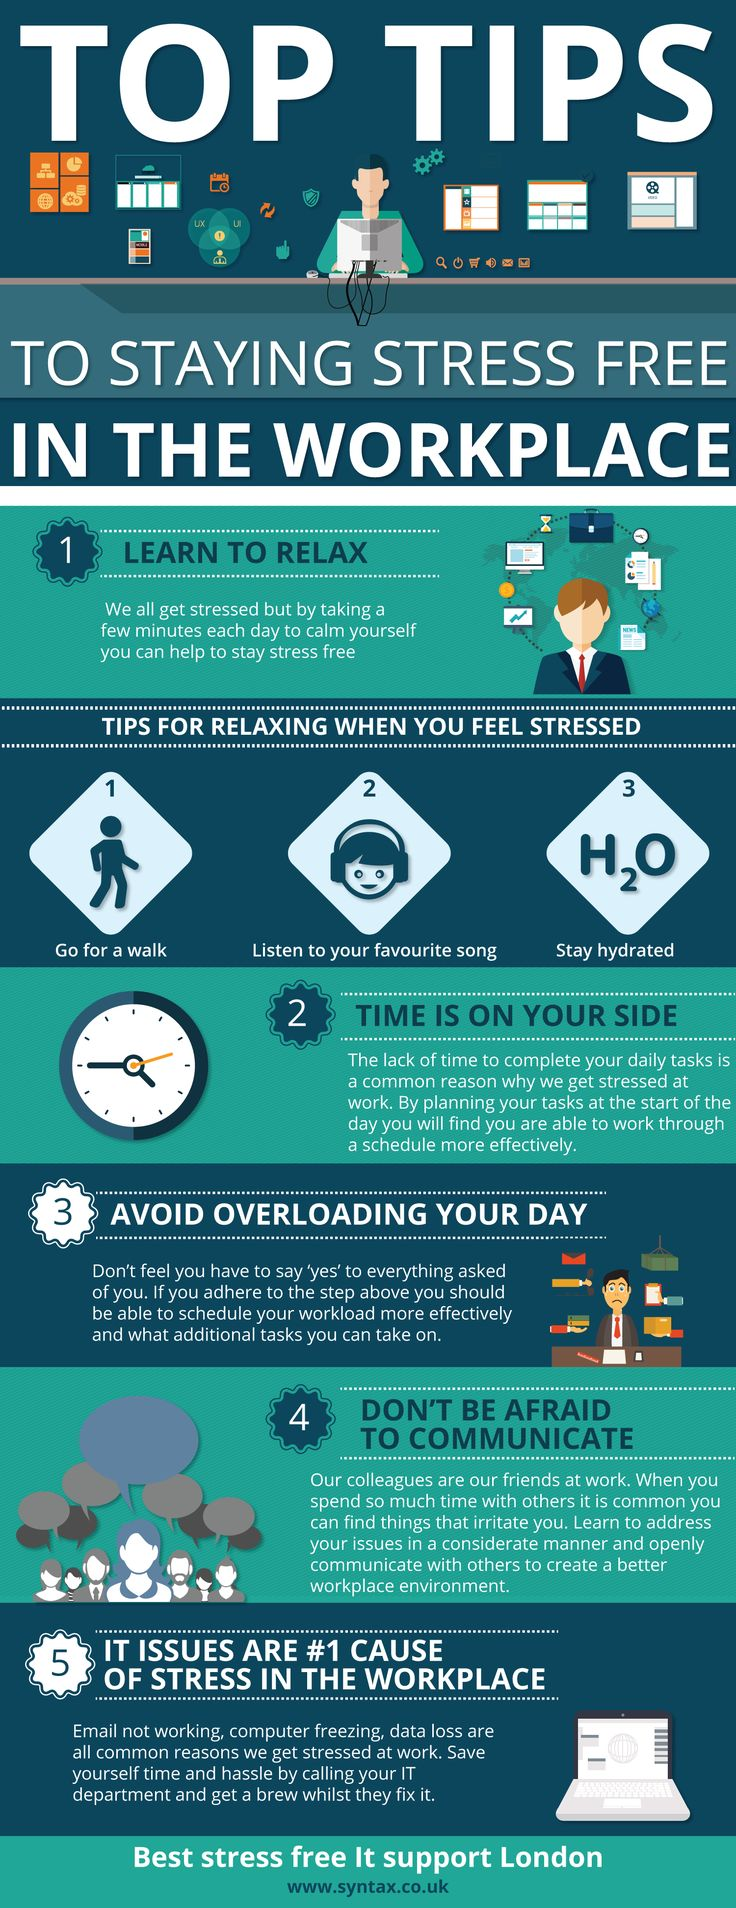 Top Tips To Staying Stress Free at Work